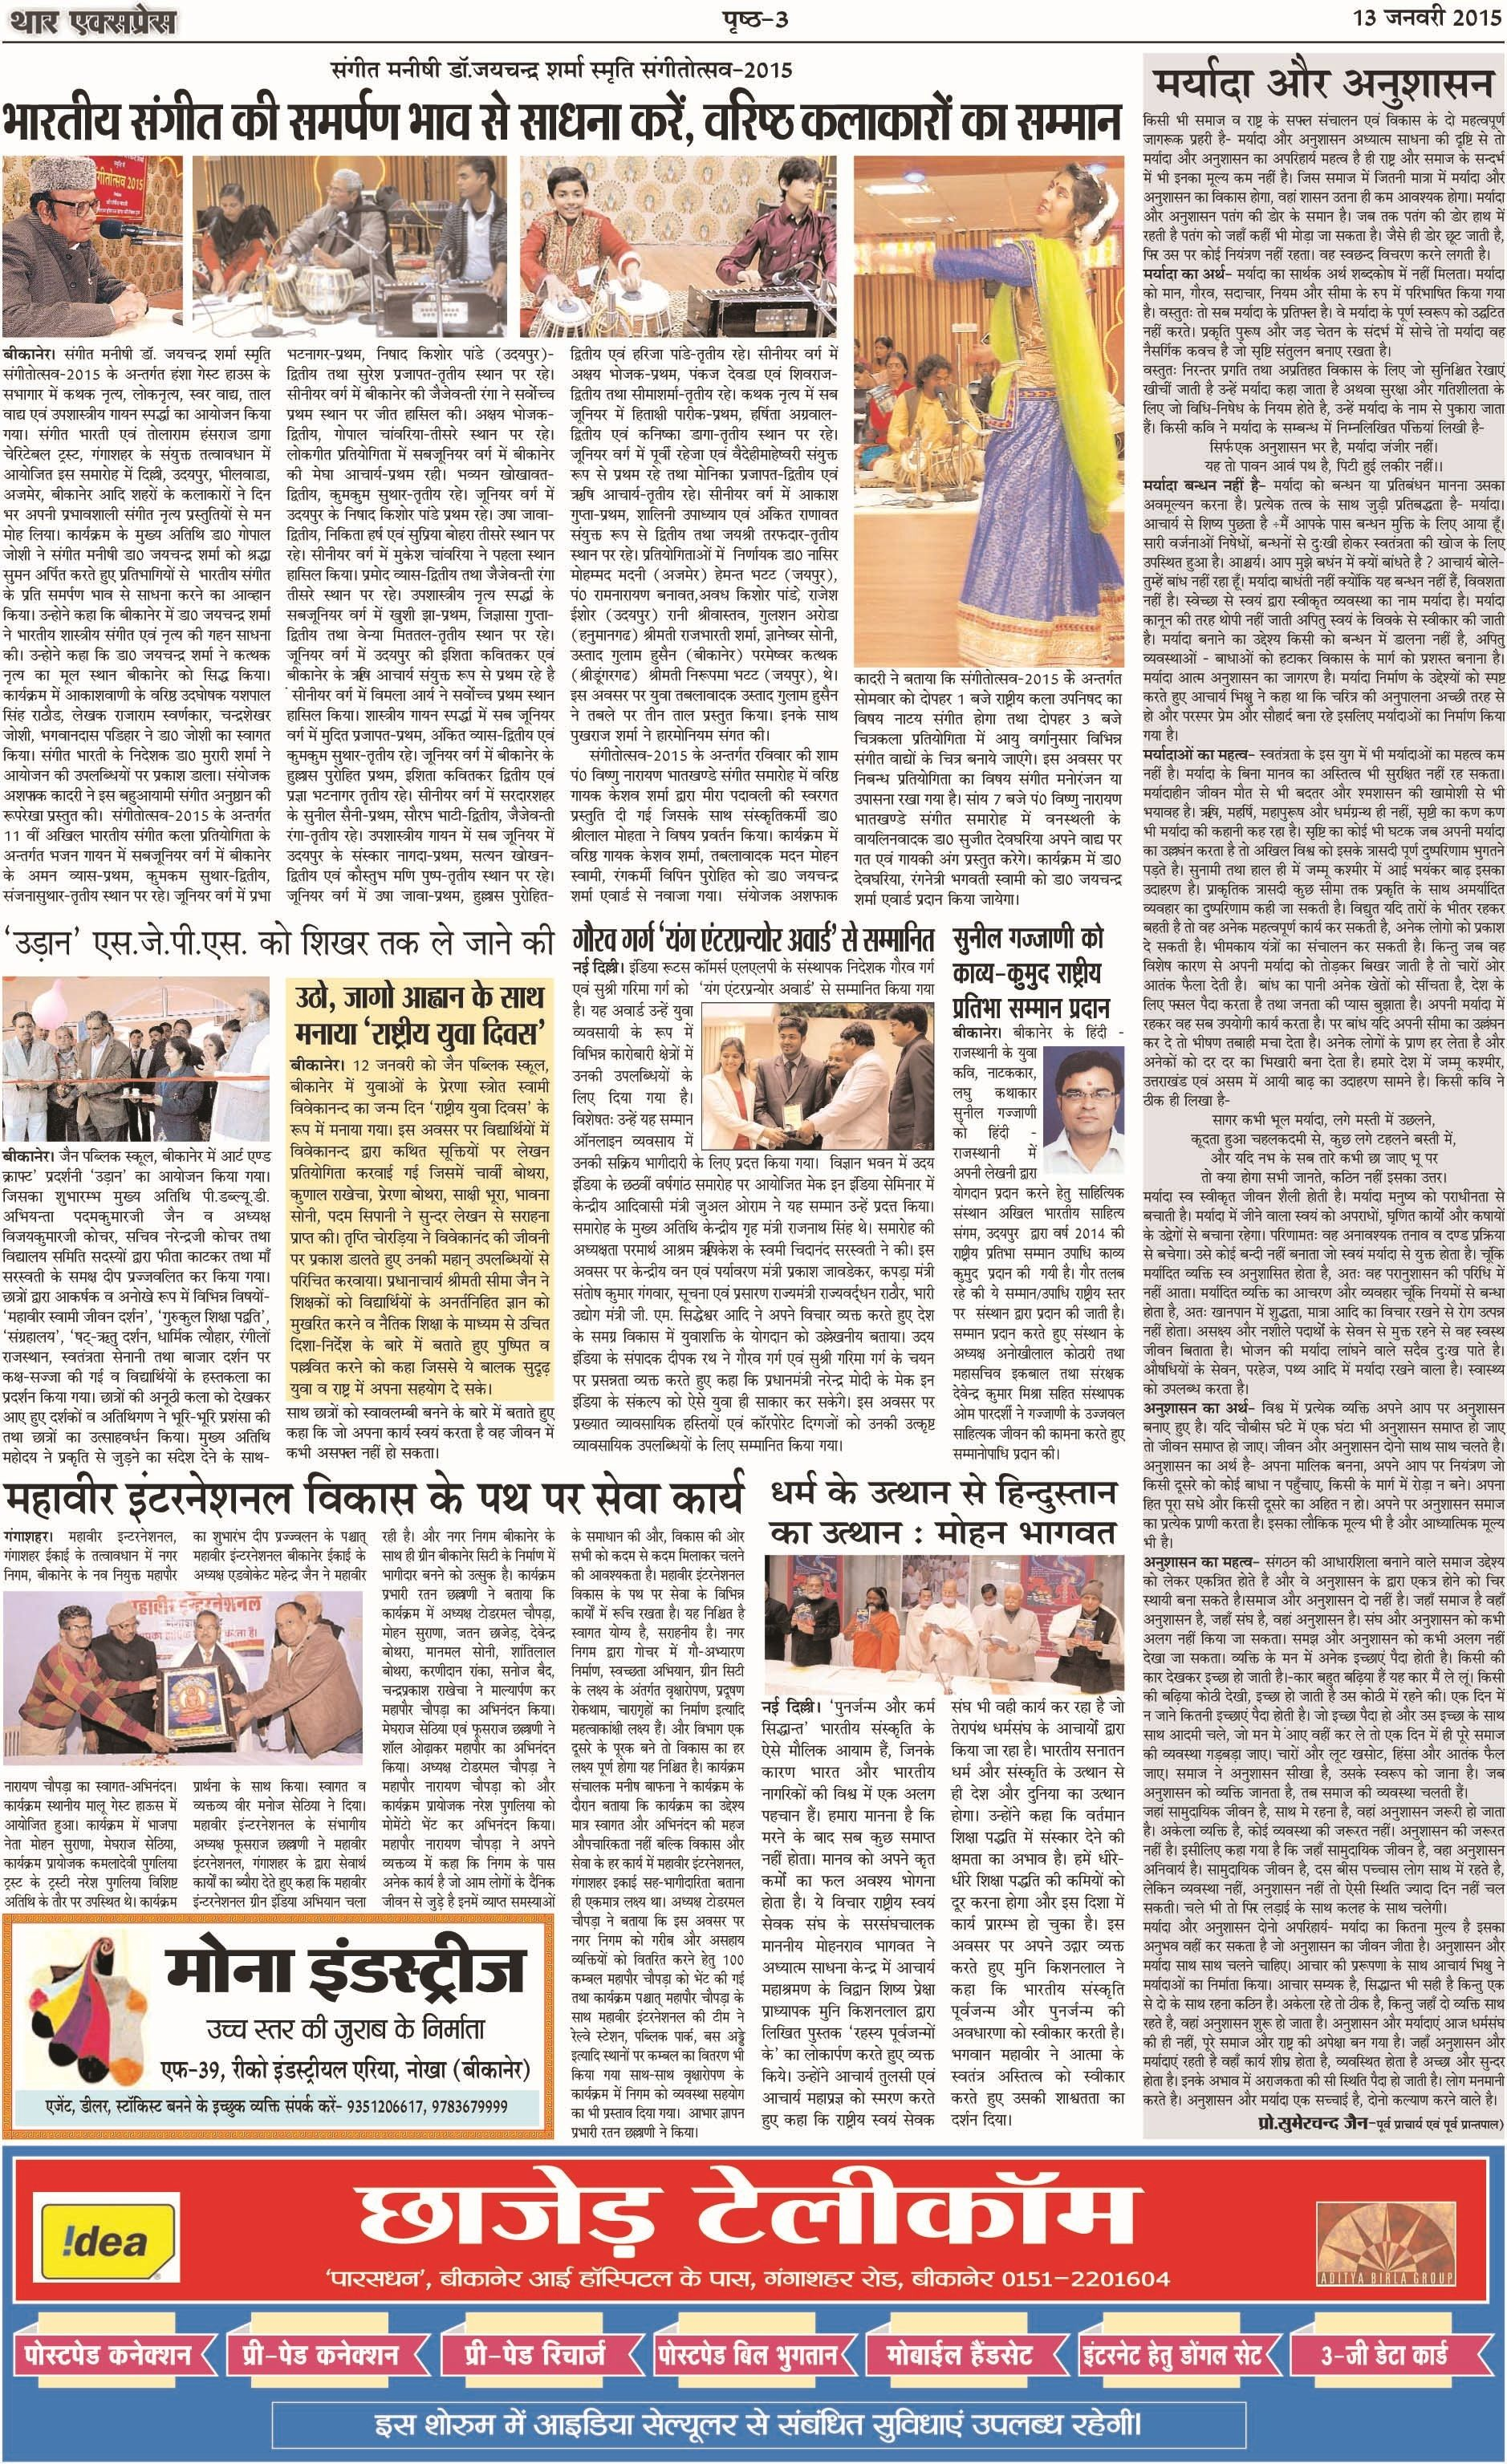 THAR EXPRESS 13 JAN 2015 PAGE 3